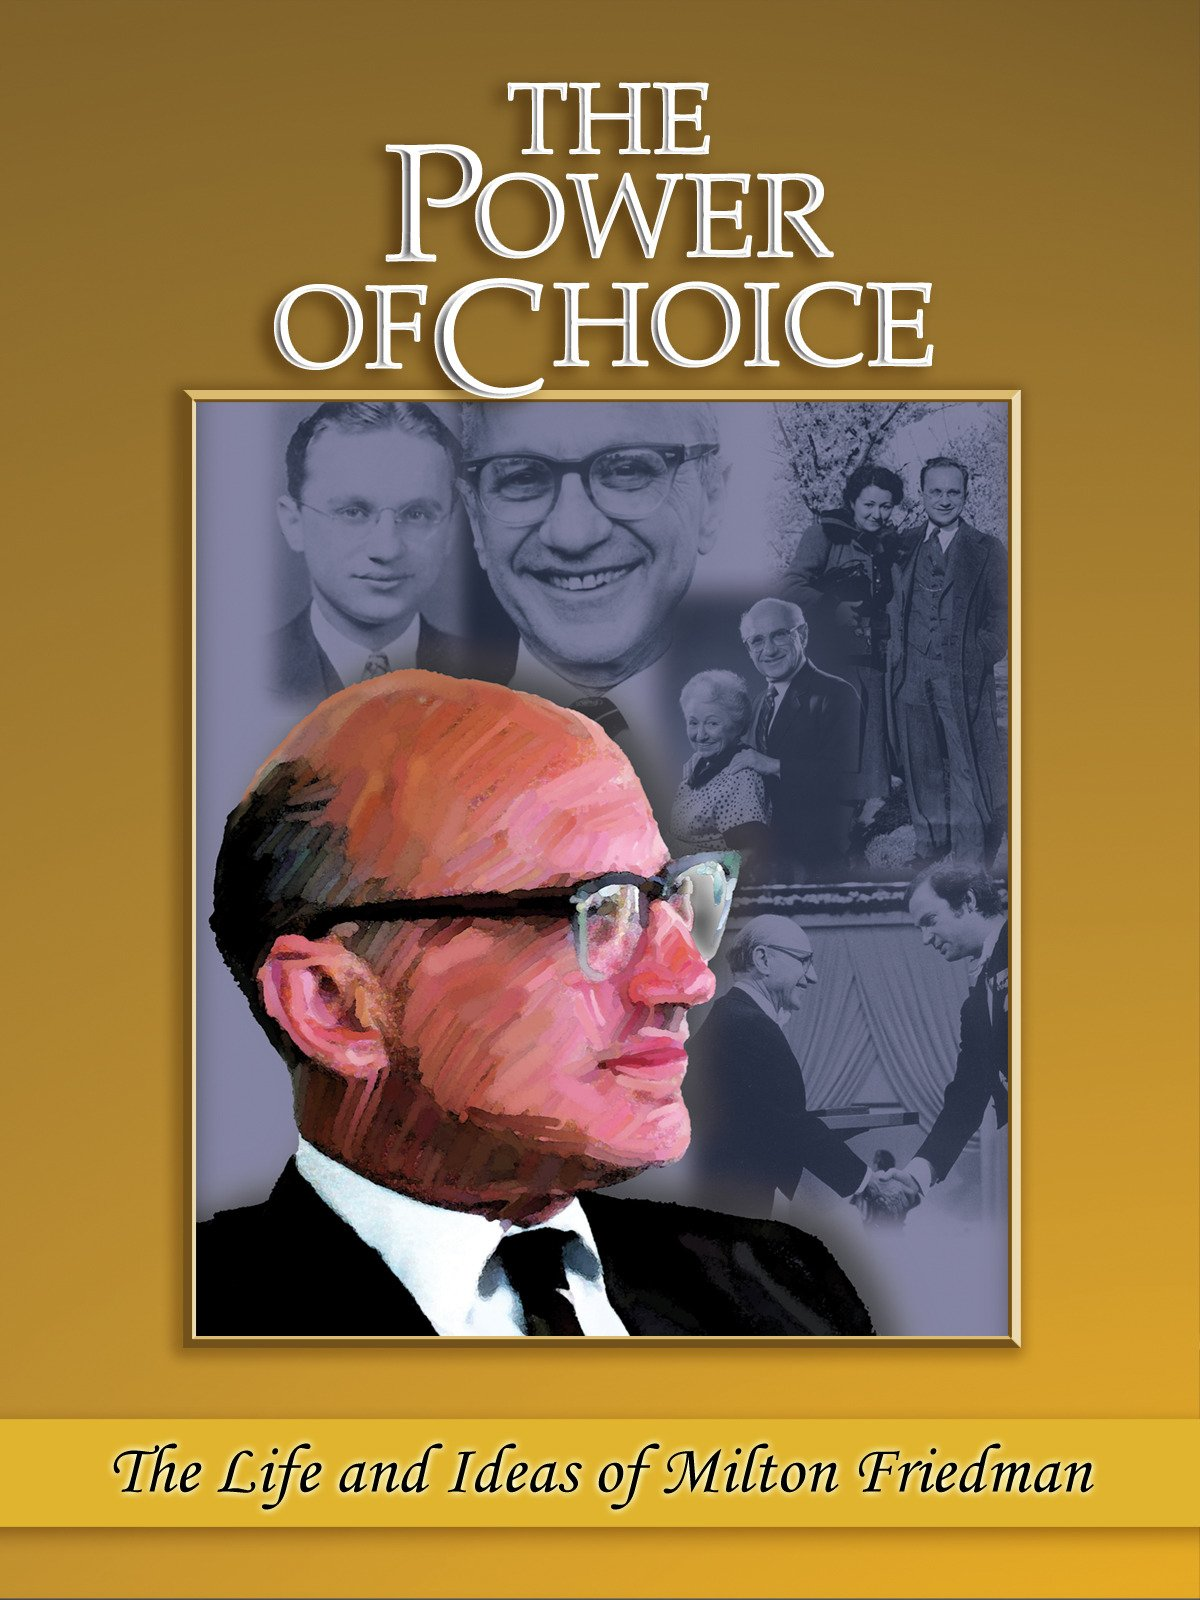 The Power of Choice: The Life and Ideas of Milton Friedman on Amazon Prime Instant Video UK